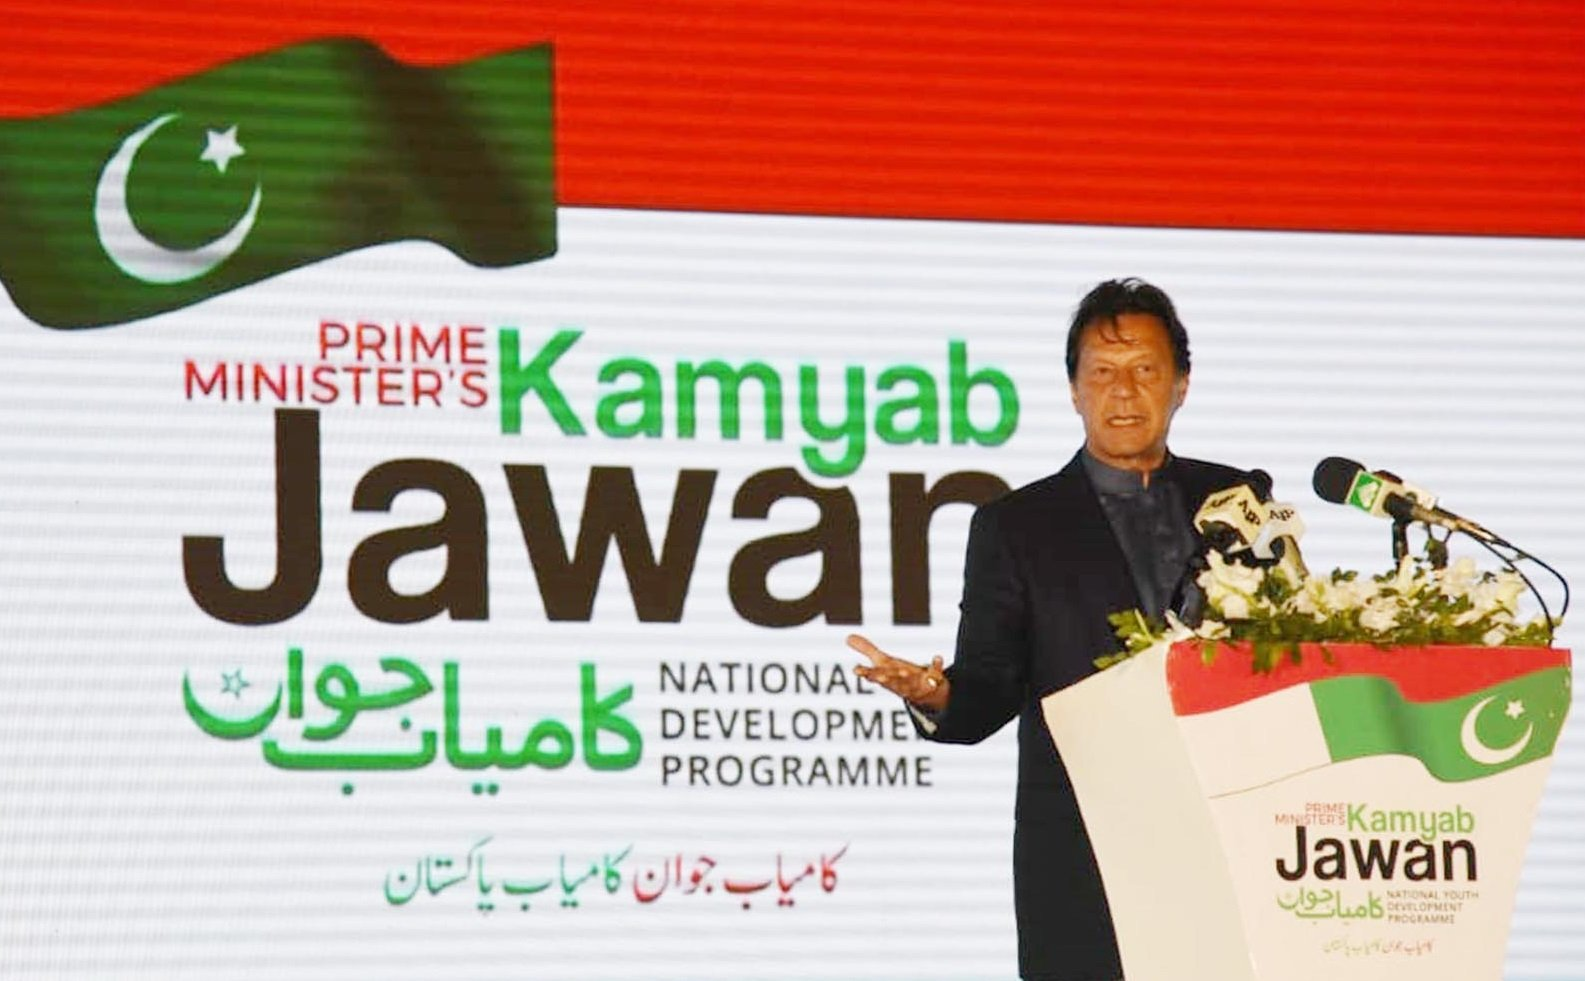 Prime Minister Imran Khan addressing after distribution of cheques in Karachi